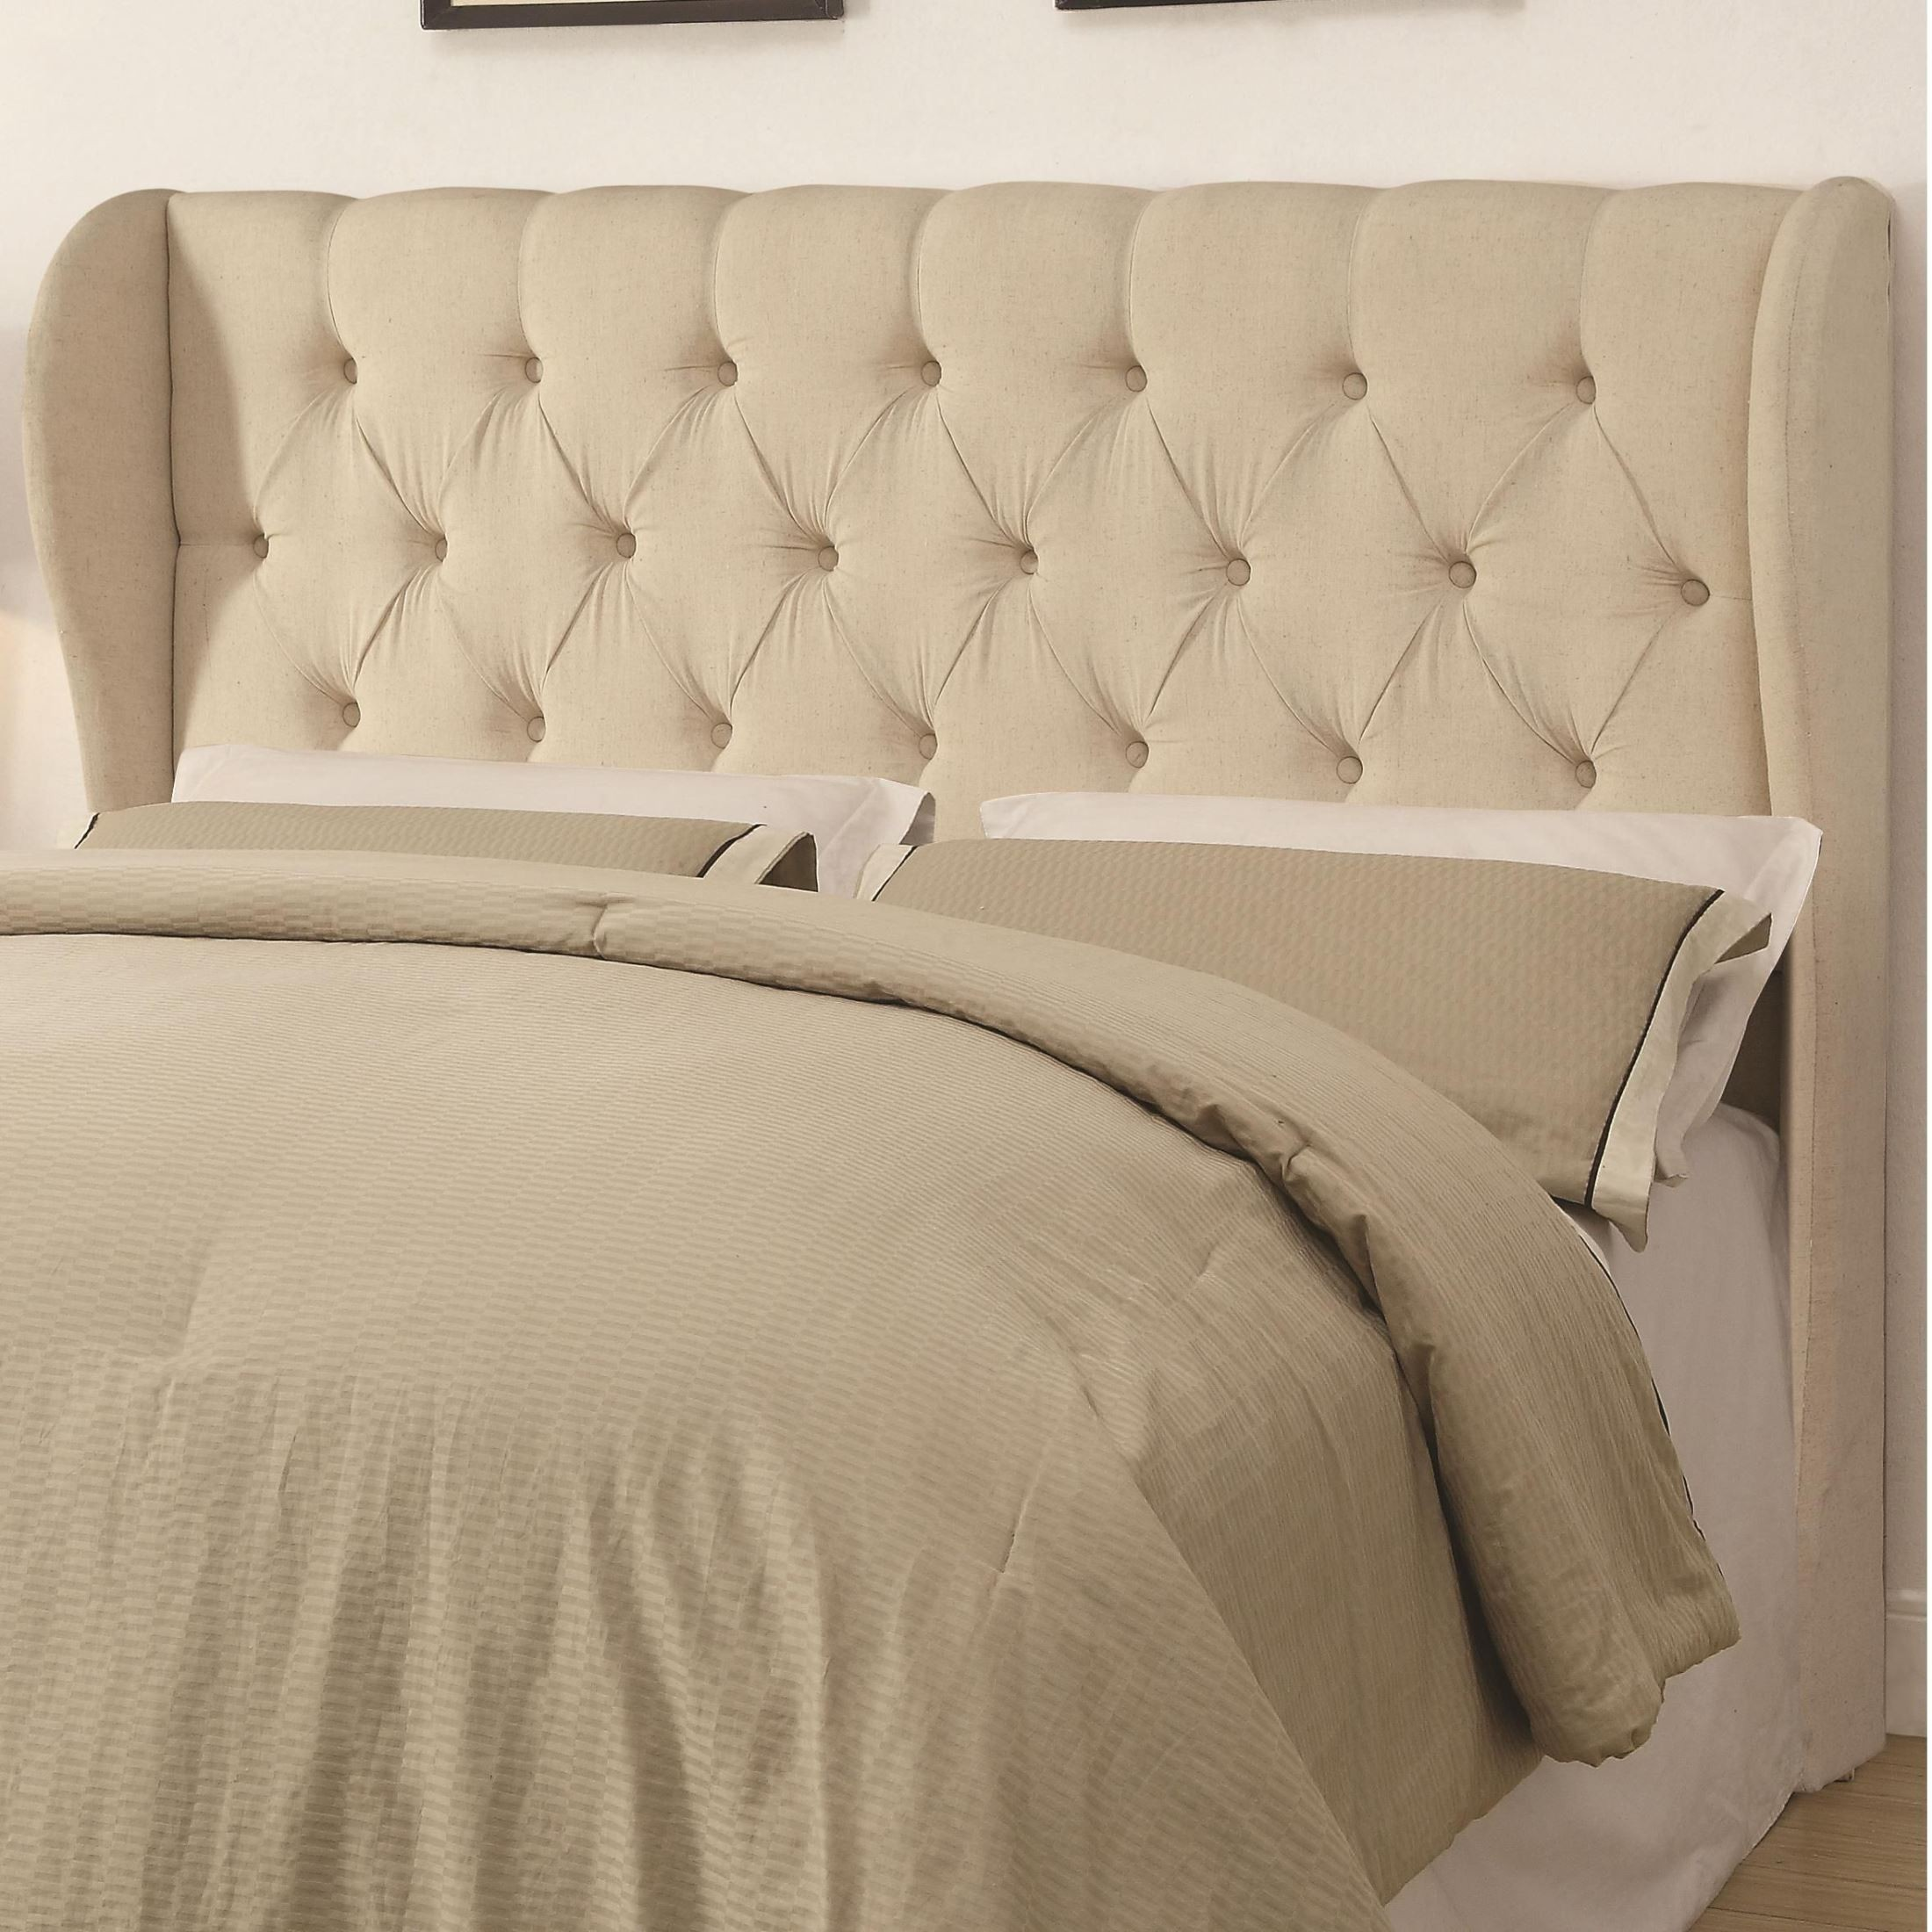 Murrieta Beige Upholstered King Tufted Headboard From. Boxwoods In Pots. Kitchen Cabinet Stand Alone. Drexel Heritage Lamps. Bathroom Lighting Fixtures. Composite Granite Sinks. Platform Couch. Allison Ramsey. Blue Upholstery Fabric